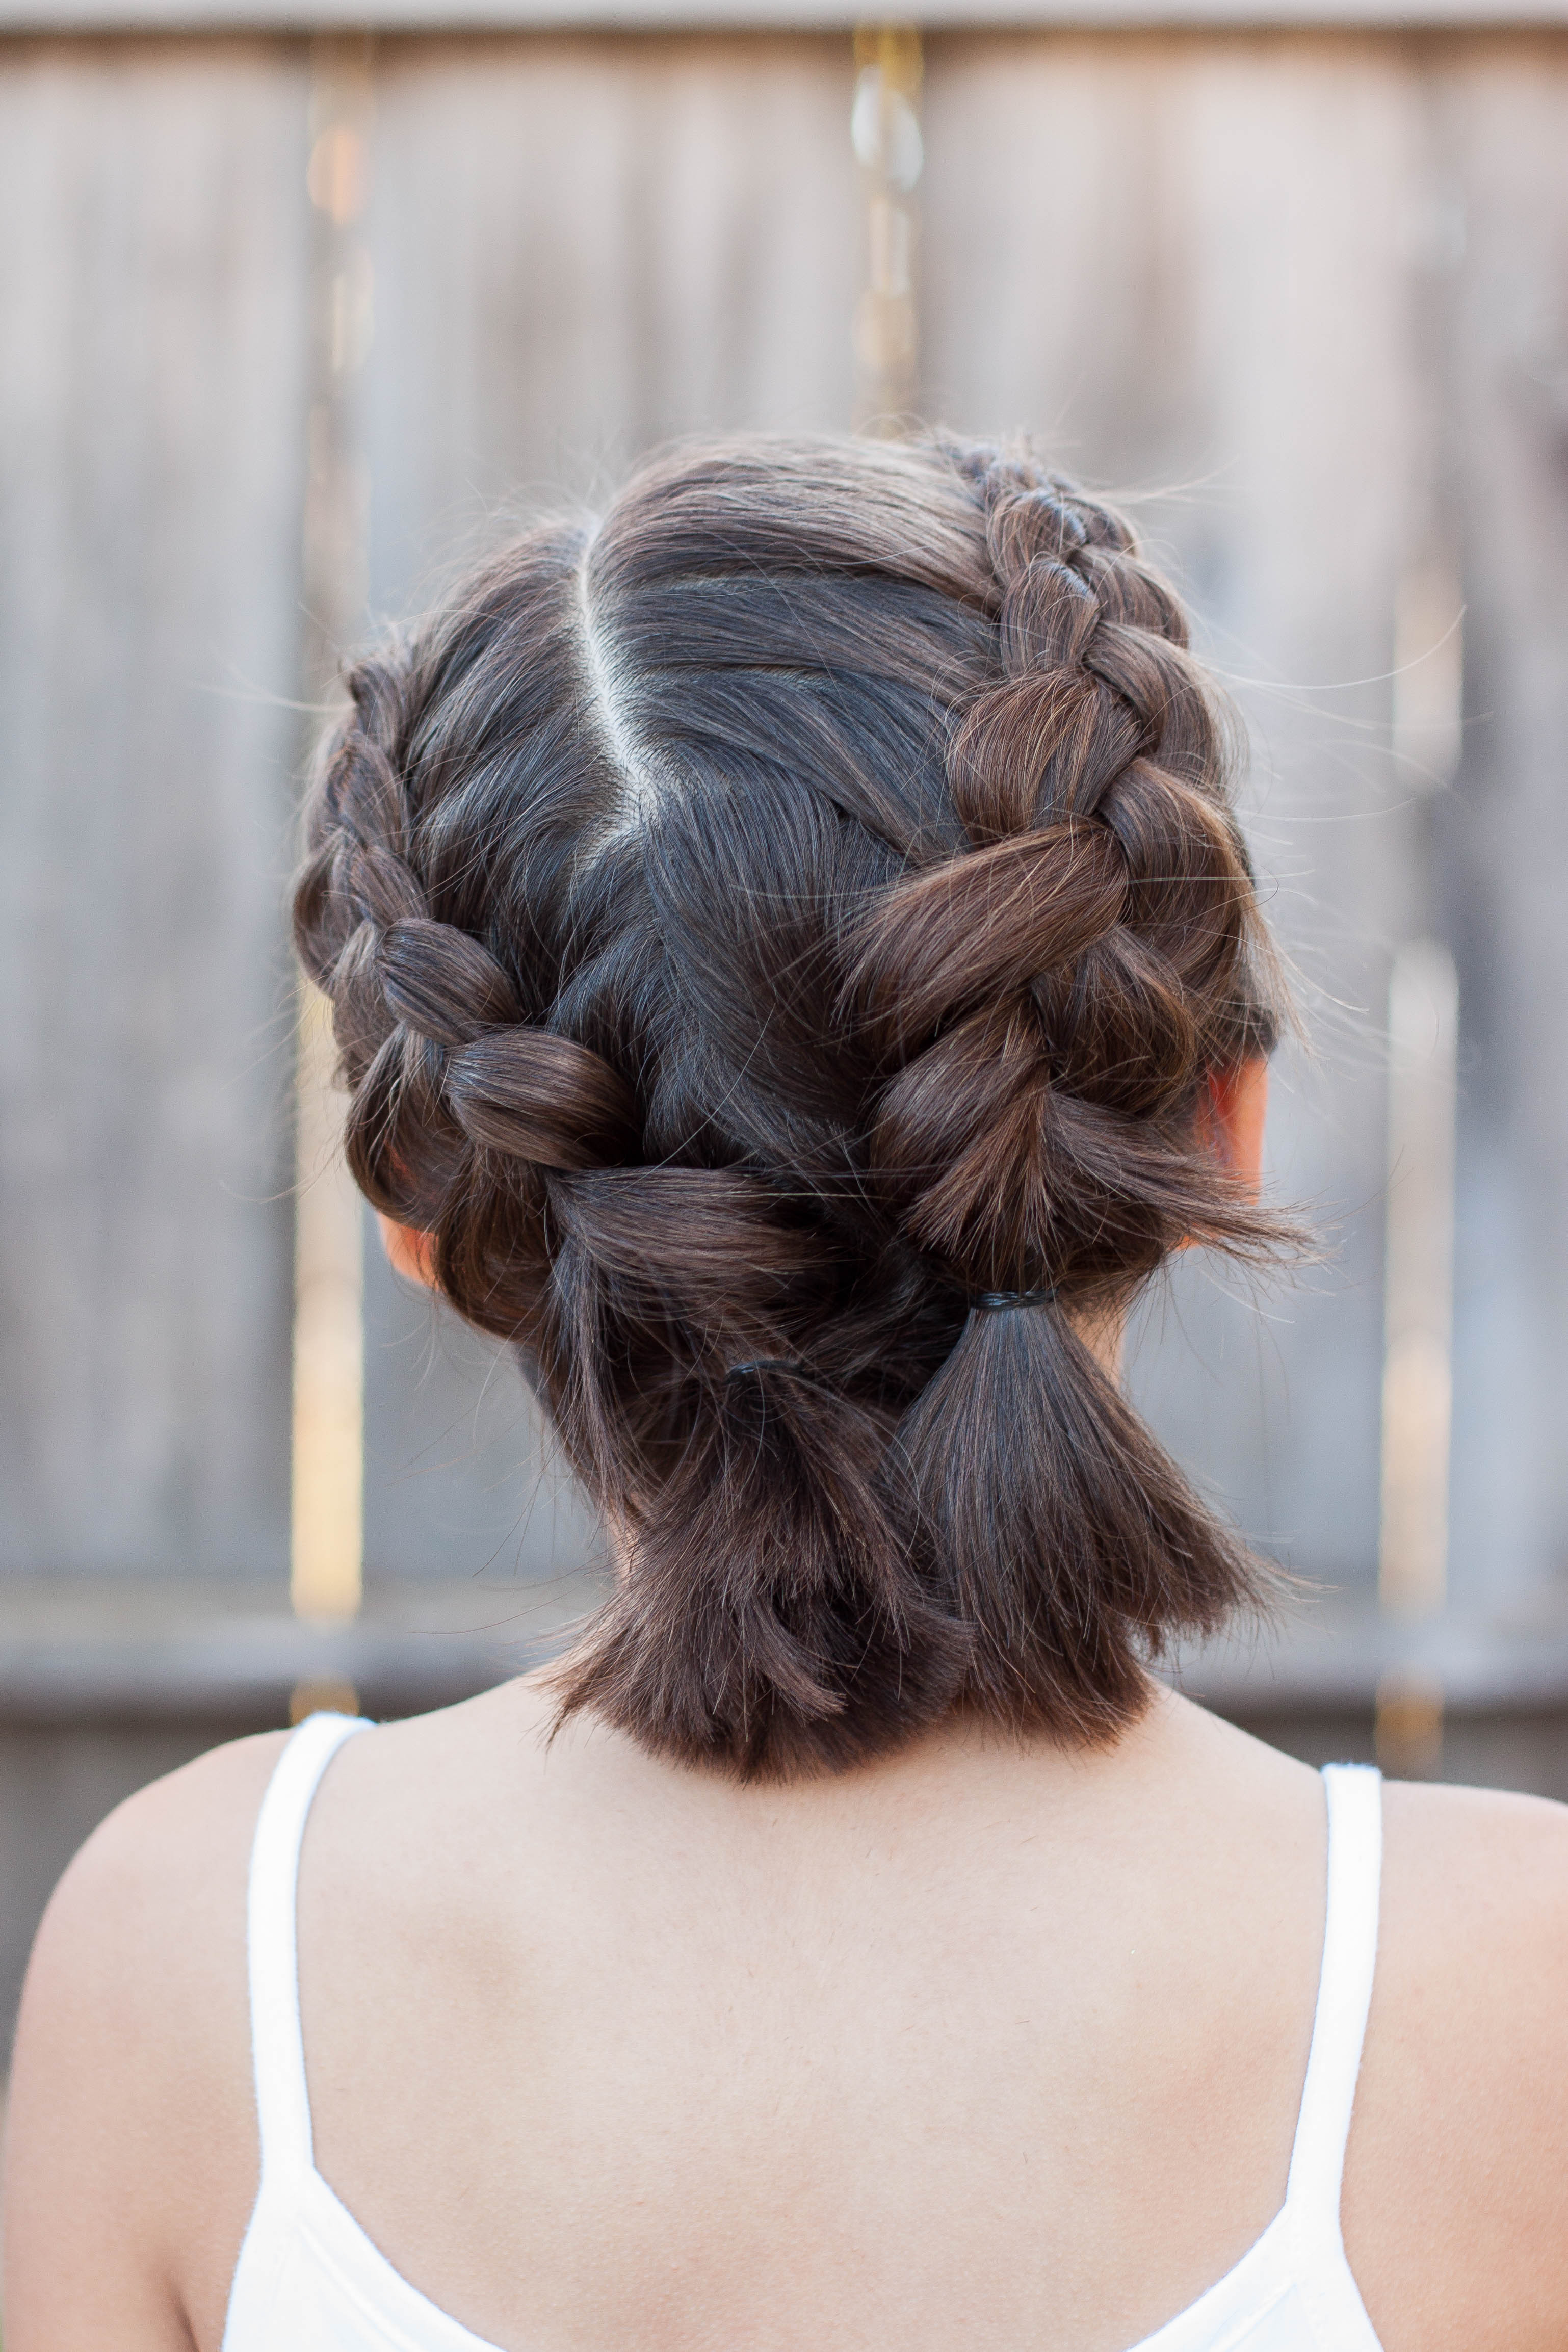 Best ideas about 5 Braids Hairstyle . Save or Pin 5 Braids for Short Hair Now.